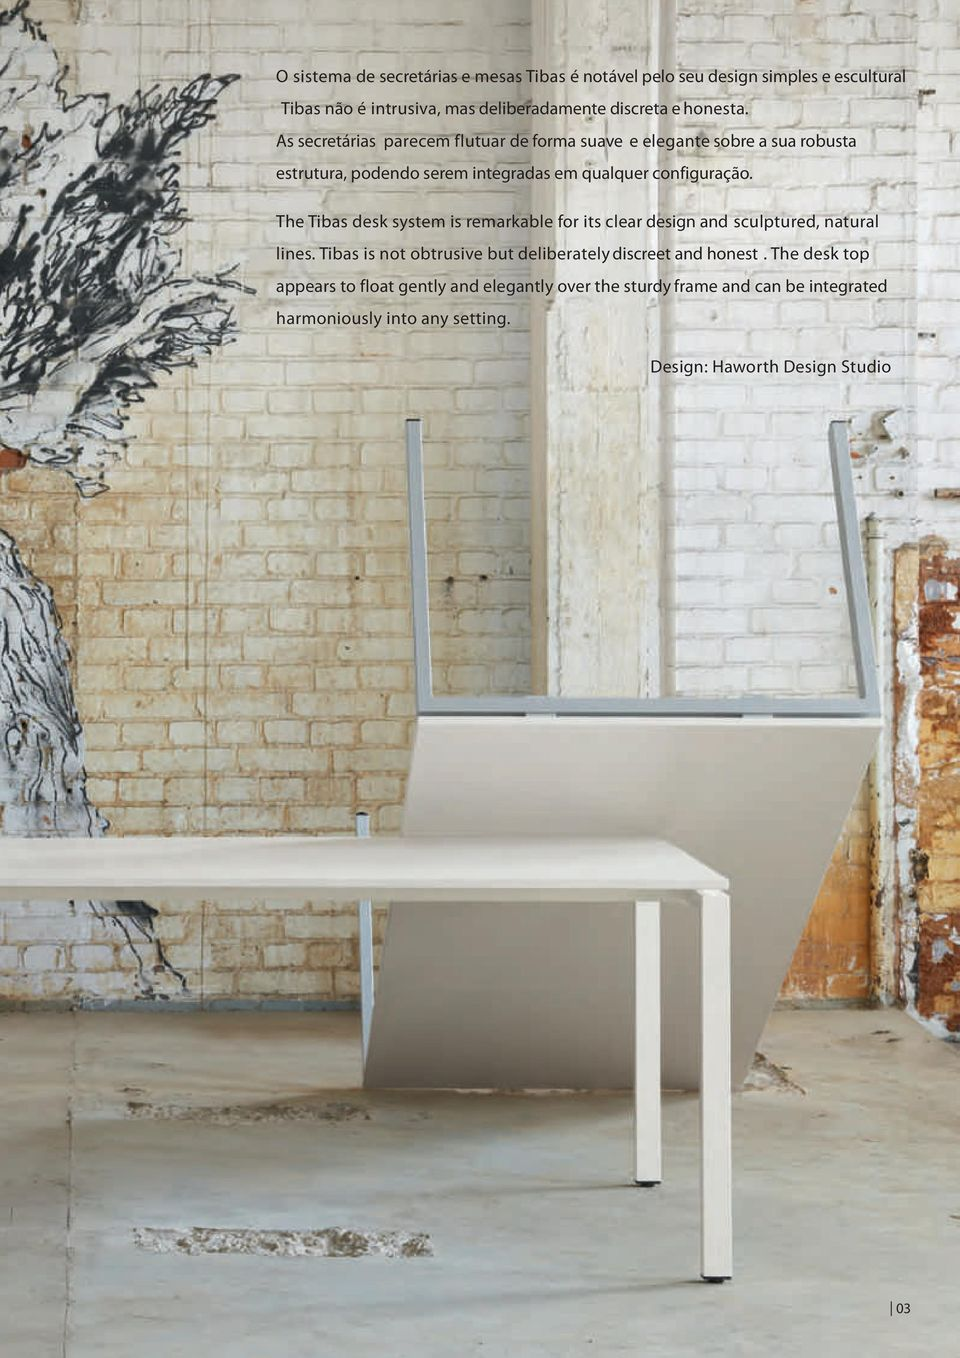 The Tibas desk system is remarkable for its clear design an d sculptured, natural lines. Tibas is not obtrusive but deliberately discreet and honest.